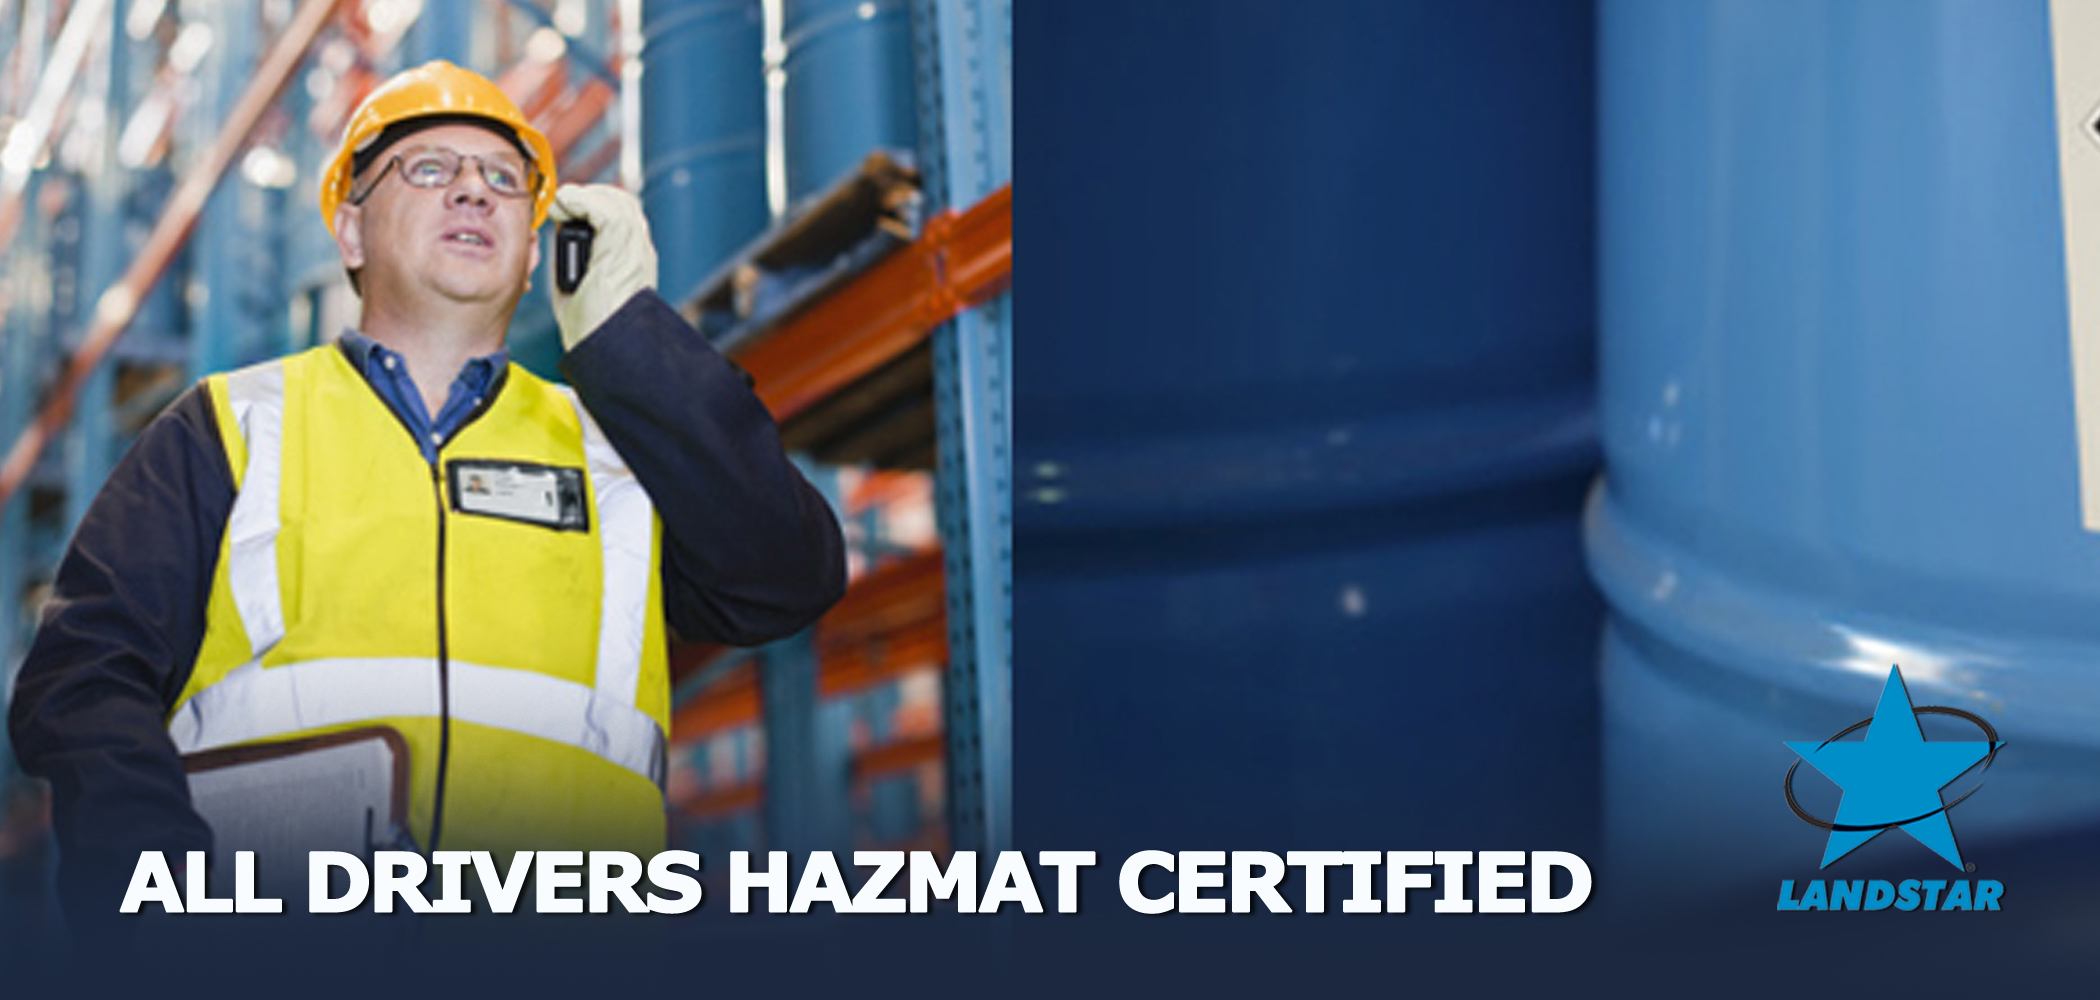 a3-slide-all-drivers-hazmat-certified.jpg